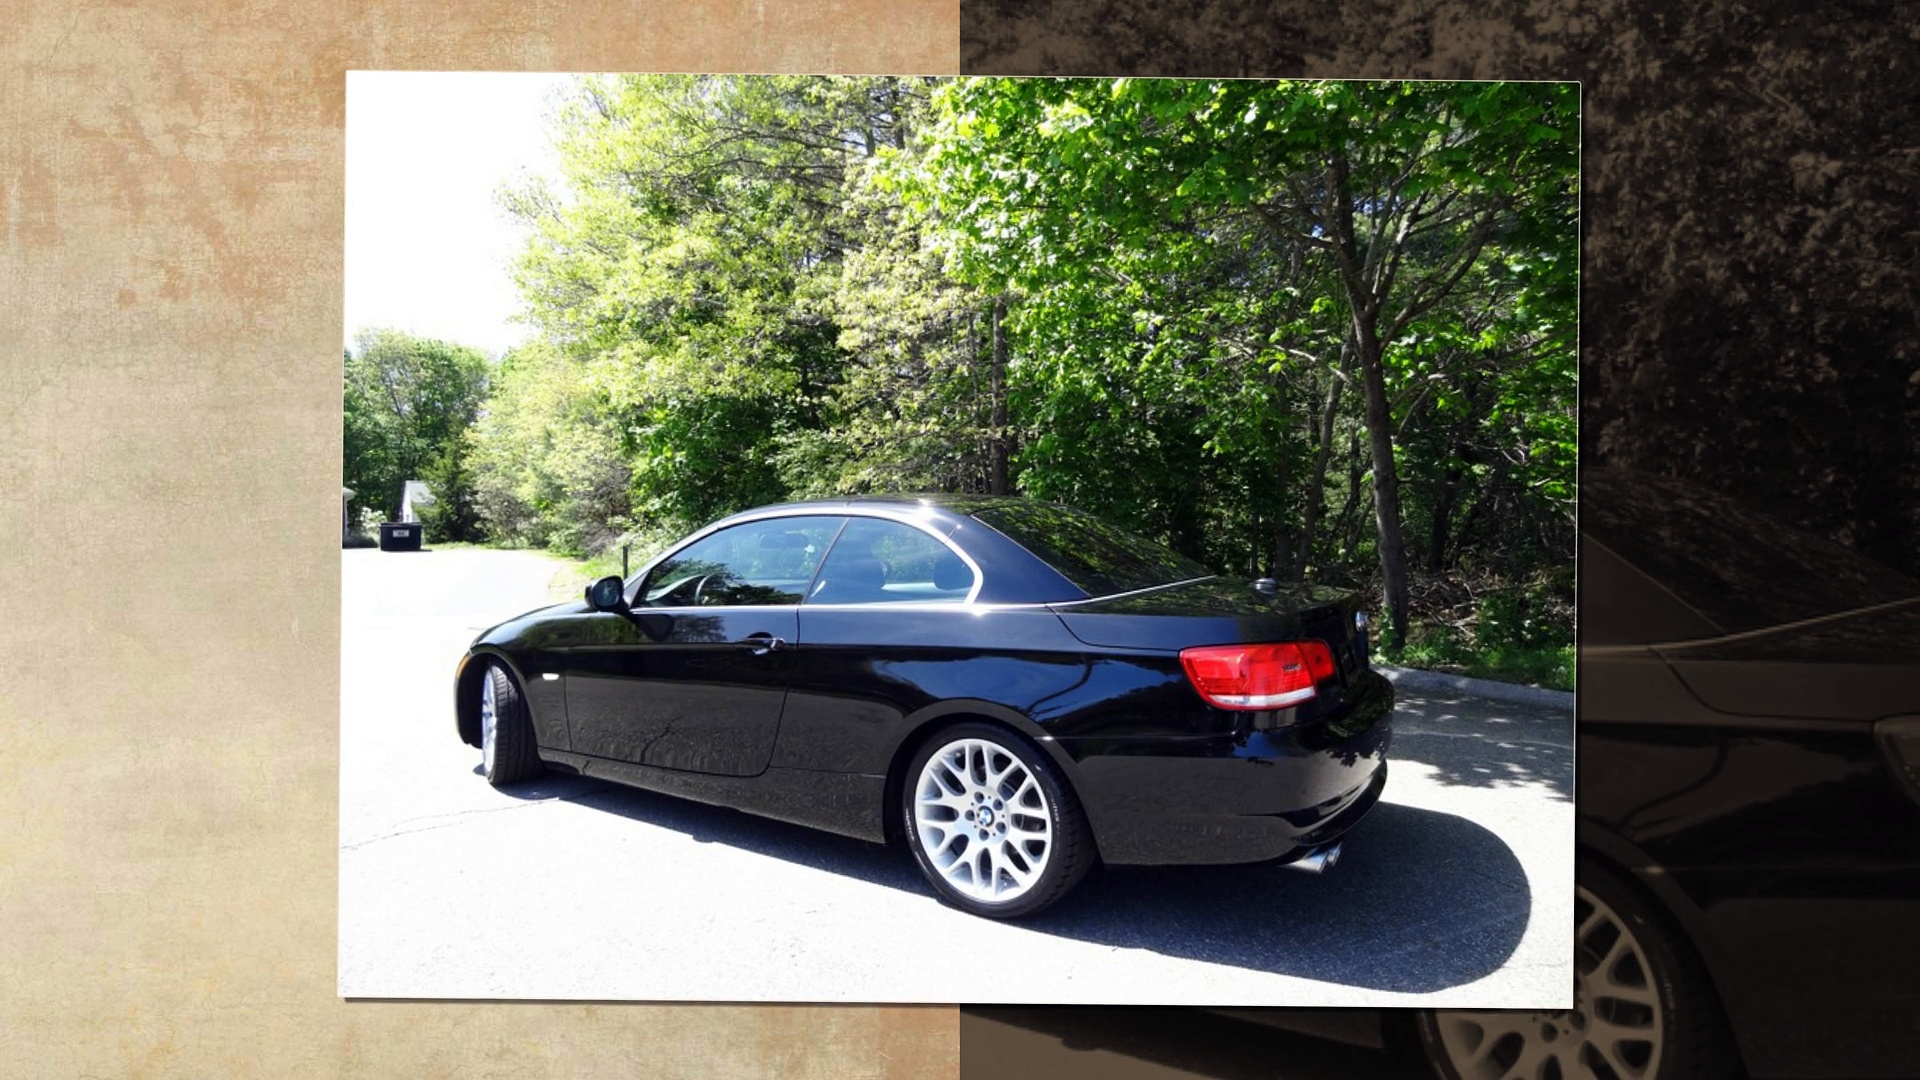 2010 BMW 328CI, For Sale, Foreign Motorcars Inc, Quincy MA, BMW Service, BMW Repair, BMW Sales